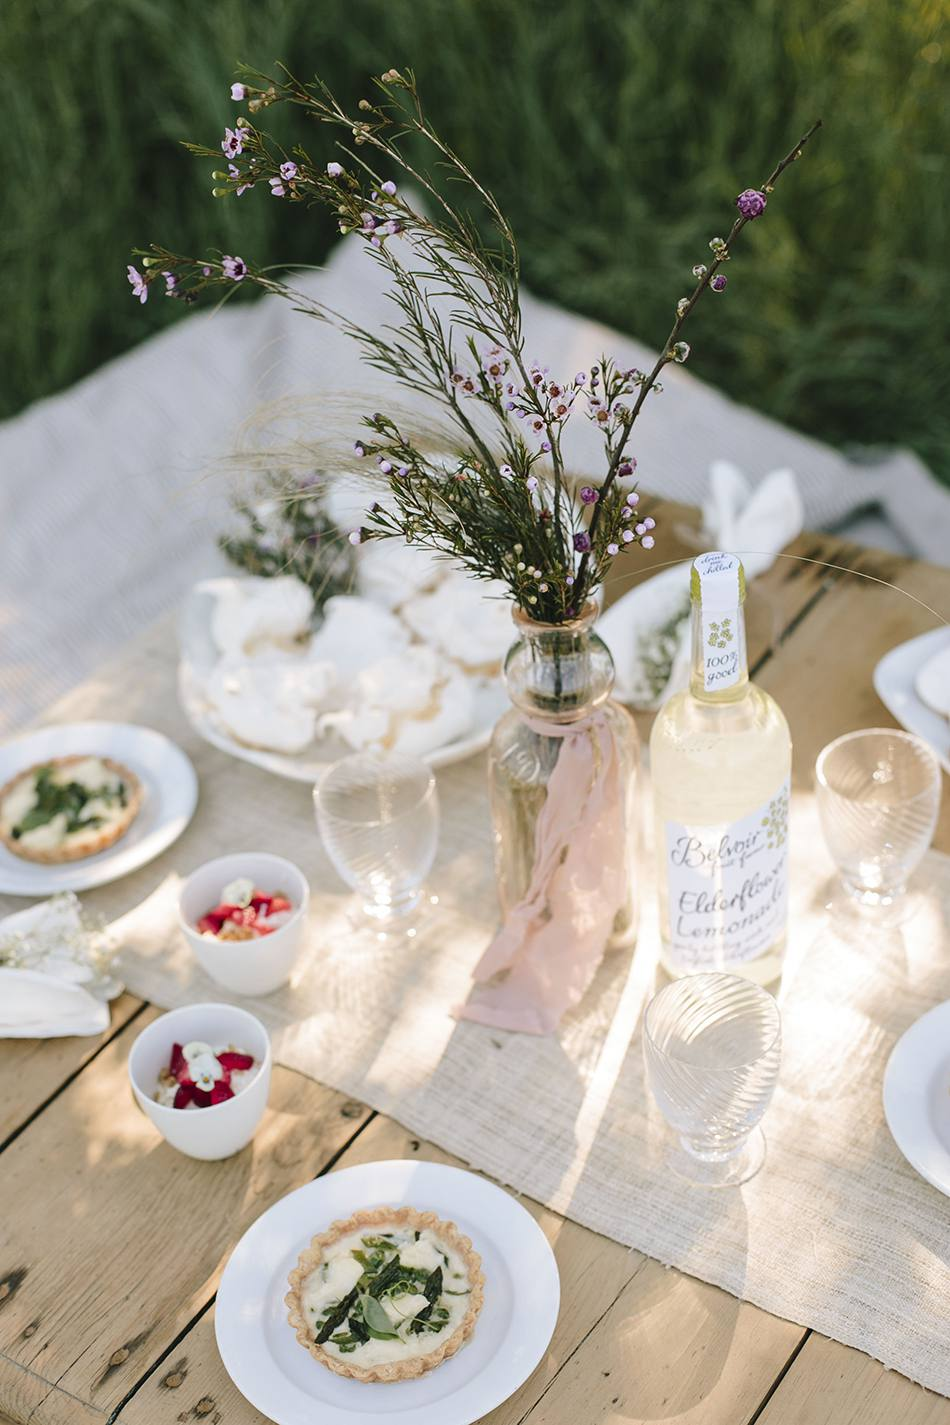 picnic with vintage decor